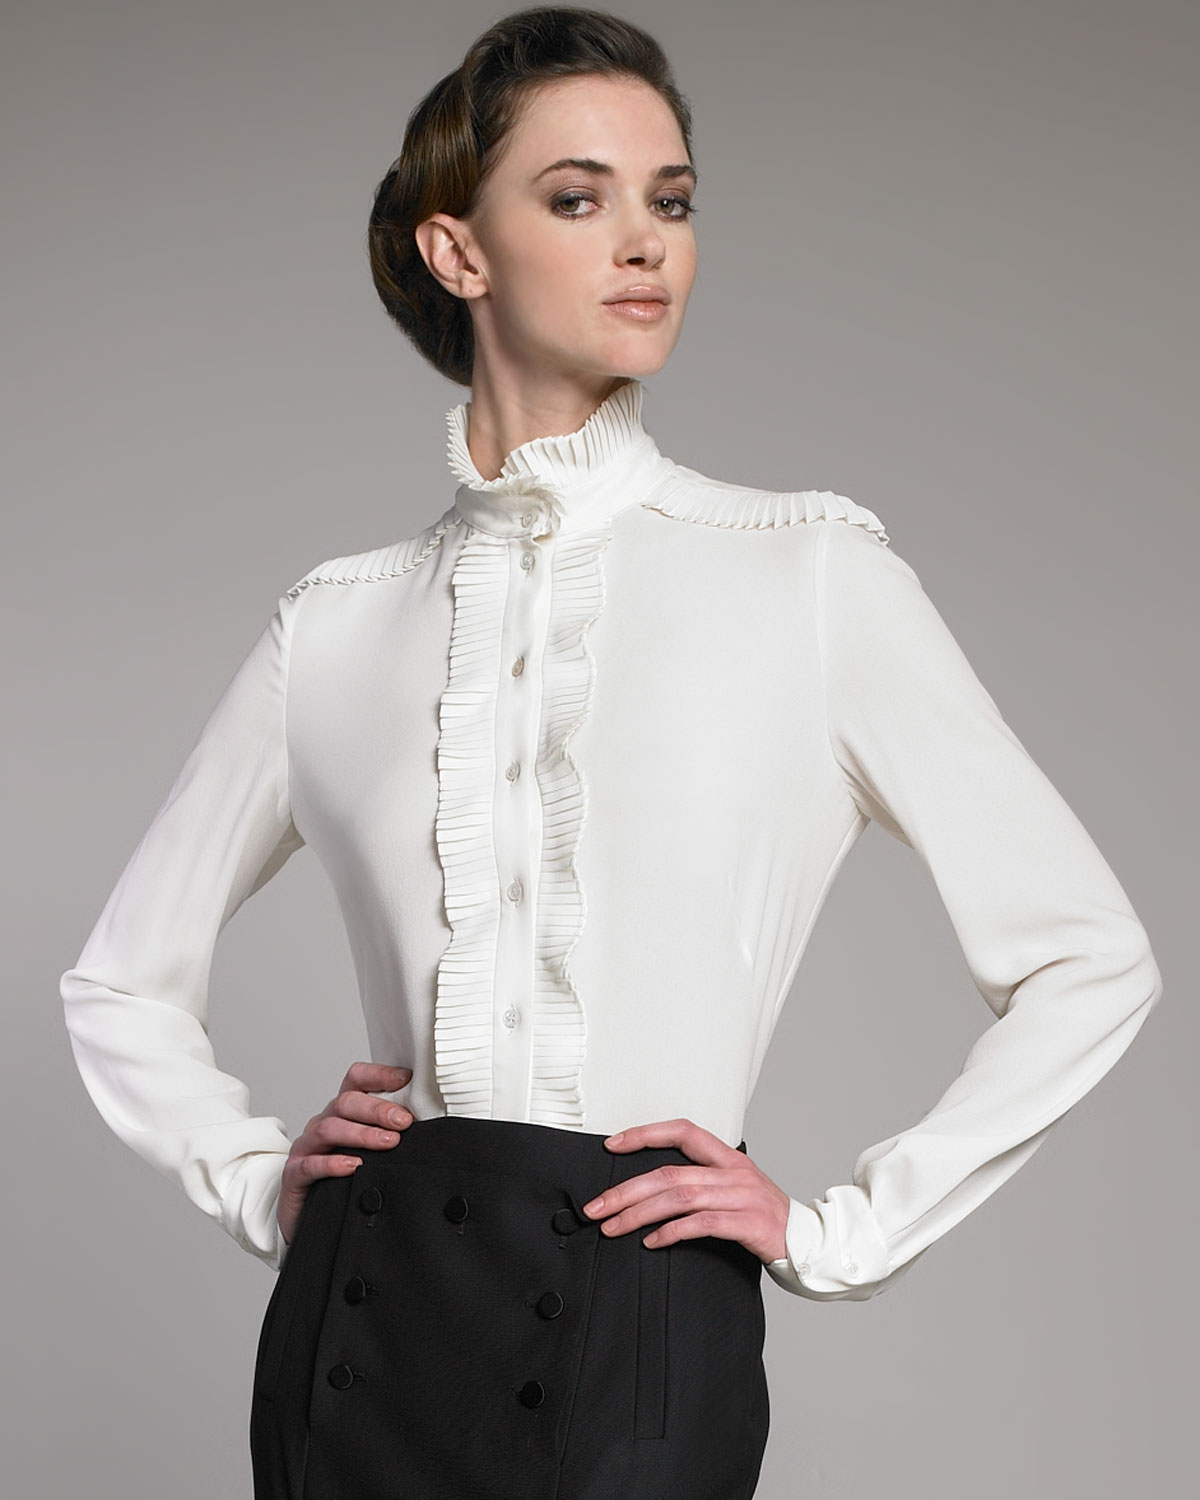 Blouse Designs Stand Collar : Lyst alexander mcqueen plisse stand collar blouse in white